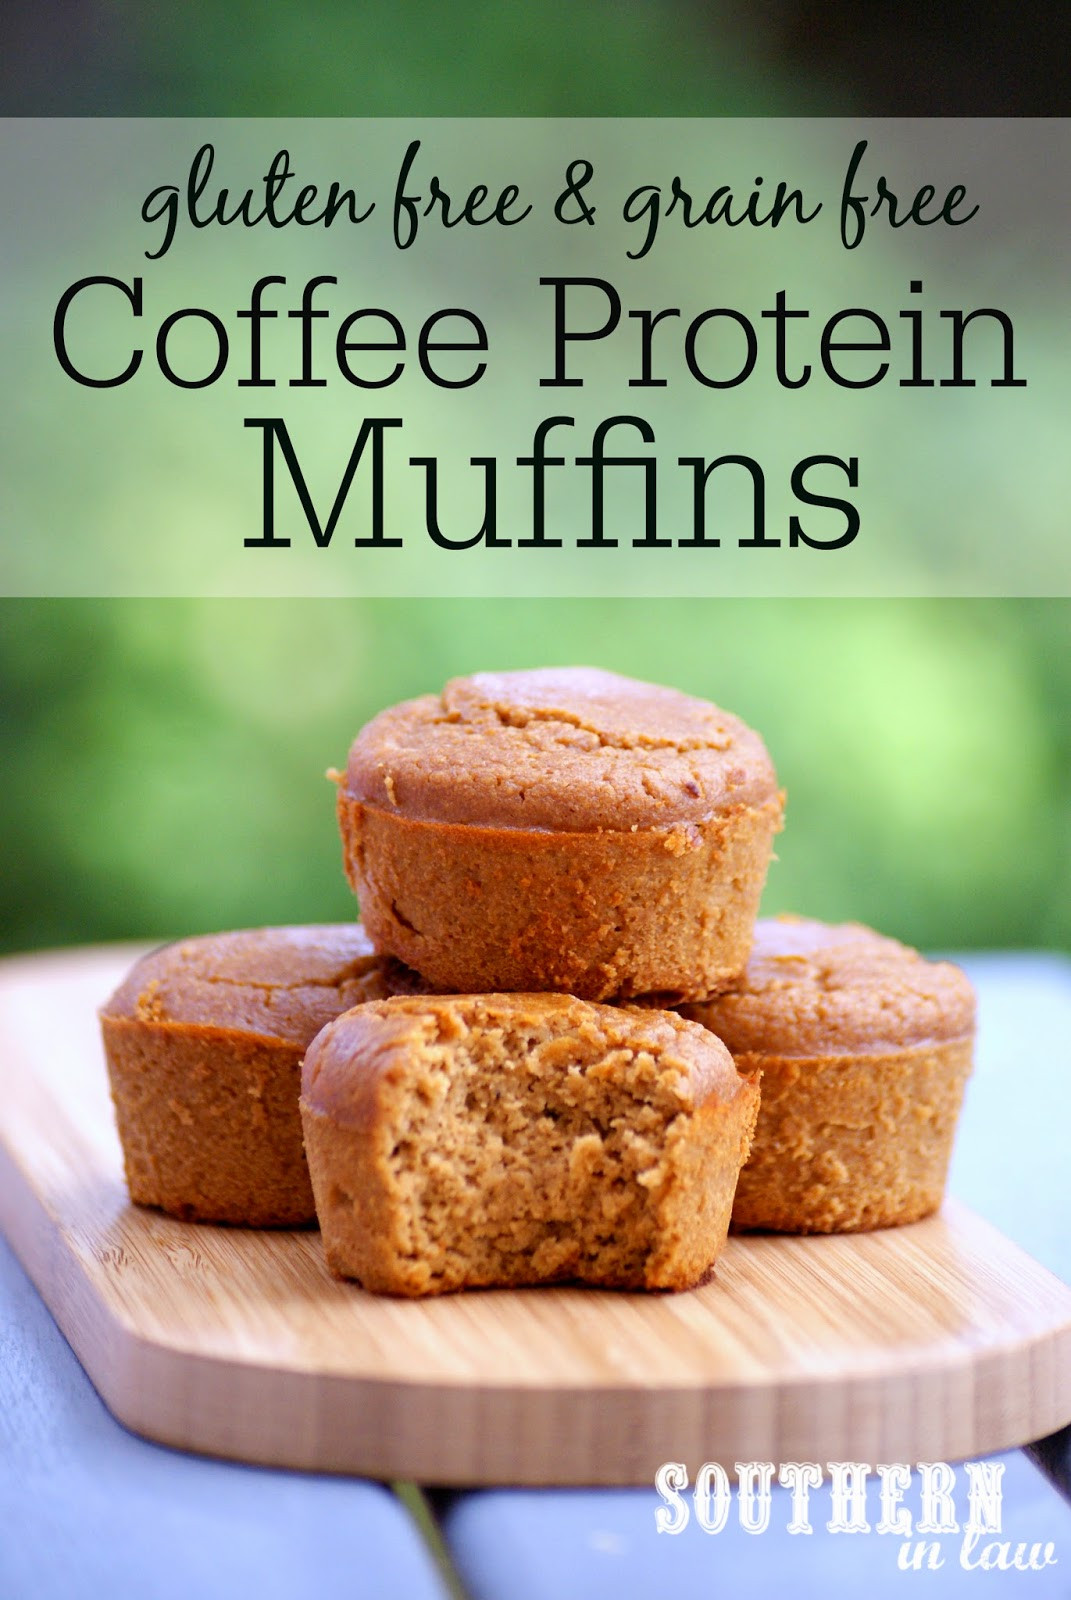 Low Fat Paleo Recipes  Southern In Law Recipe Healthy Coffee Protein Muffins